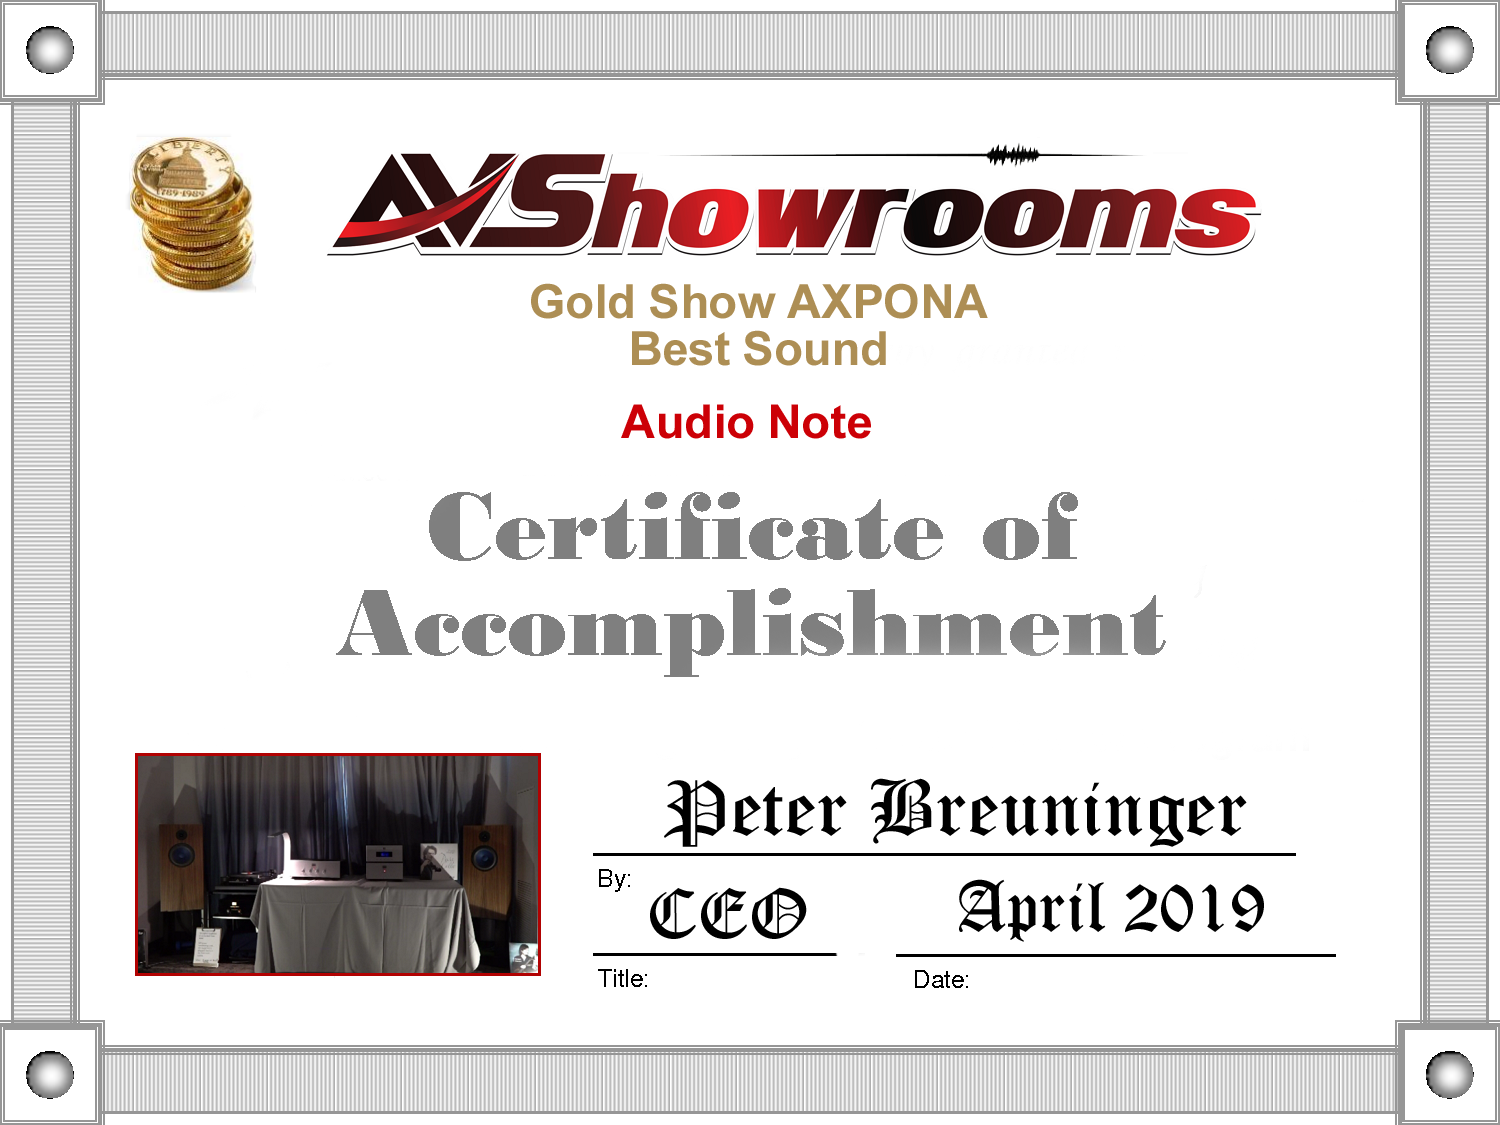 AXPONA 2019 Awards & Show Report - AV Showrooms